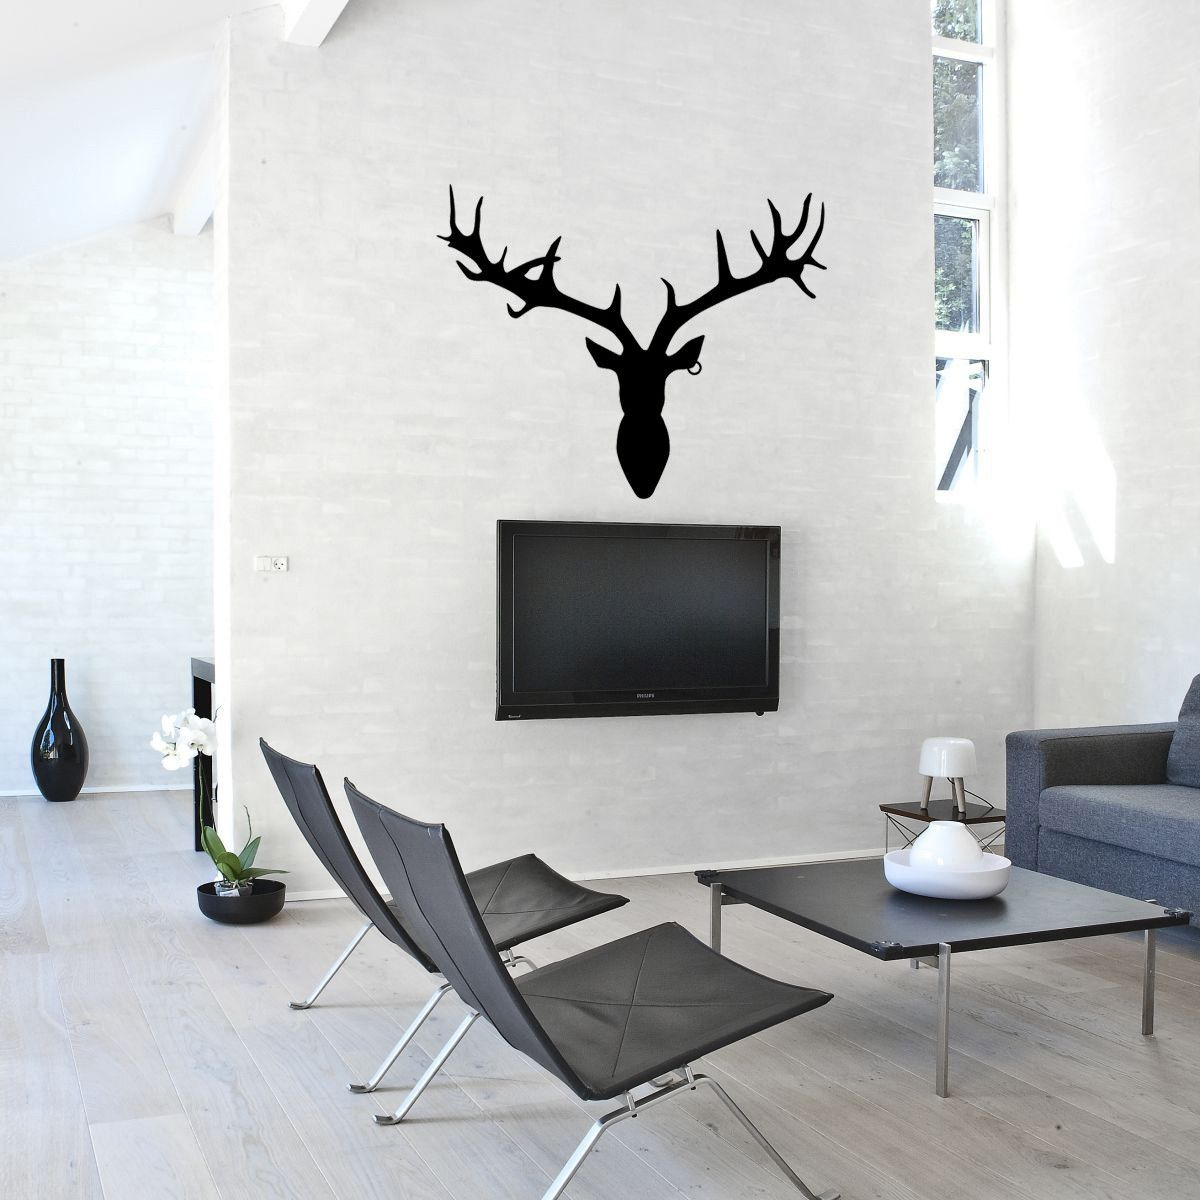 Fireplace Decal Deer Head Wall Decal 49x39 By Labyrinth Barcelona 28